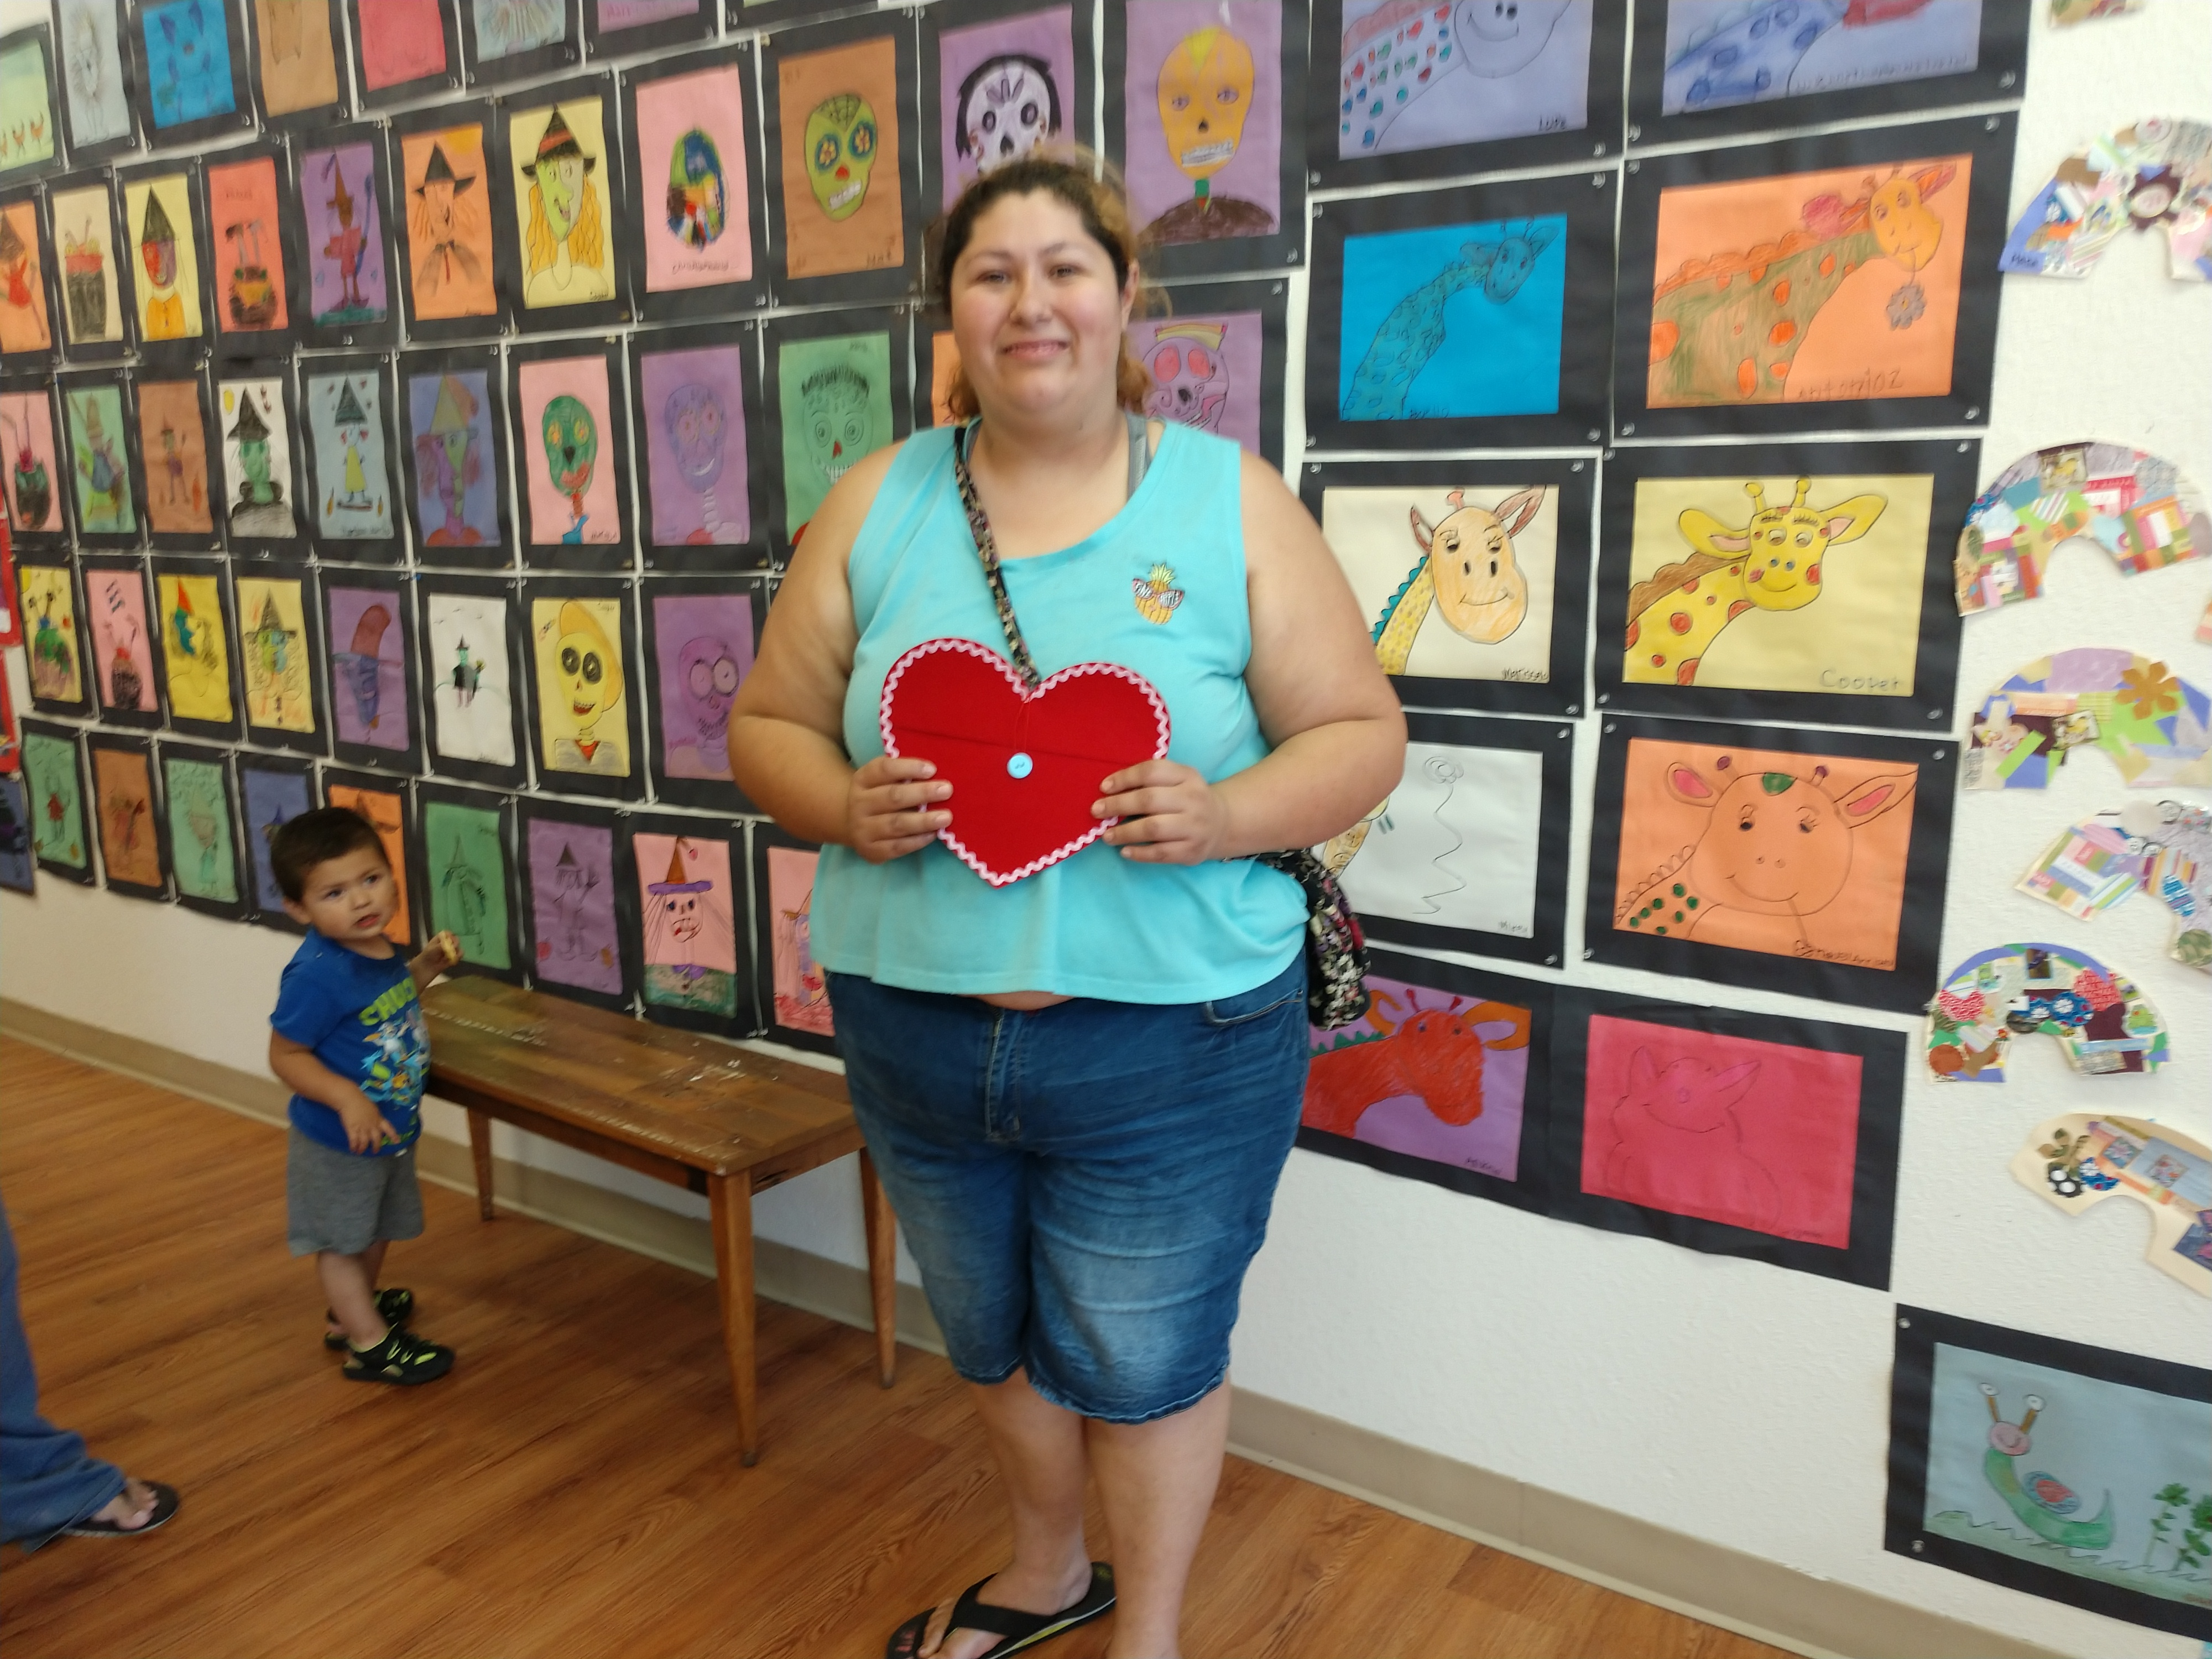 Lupe's certificate is heart-shaped because almost all of her artwork has hearts in it.